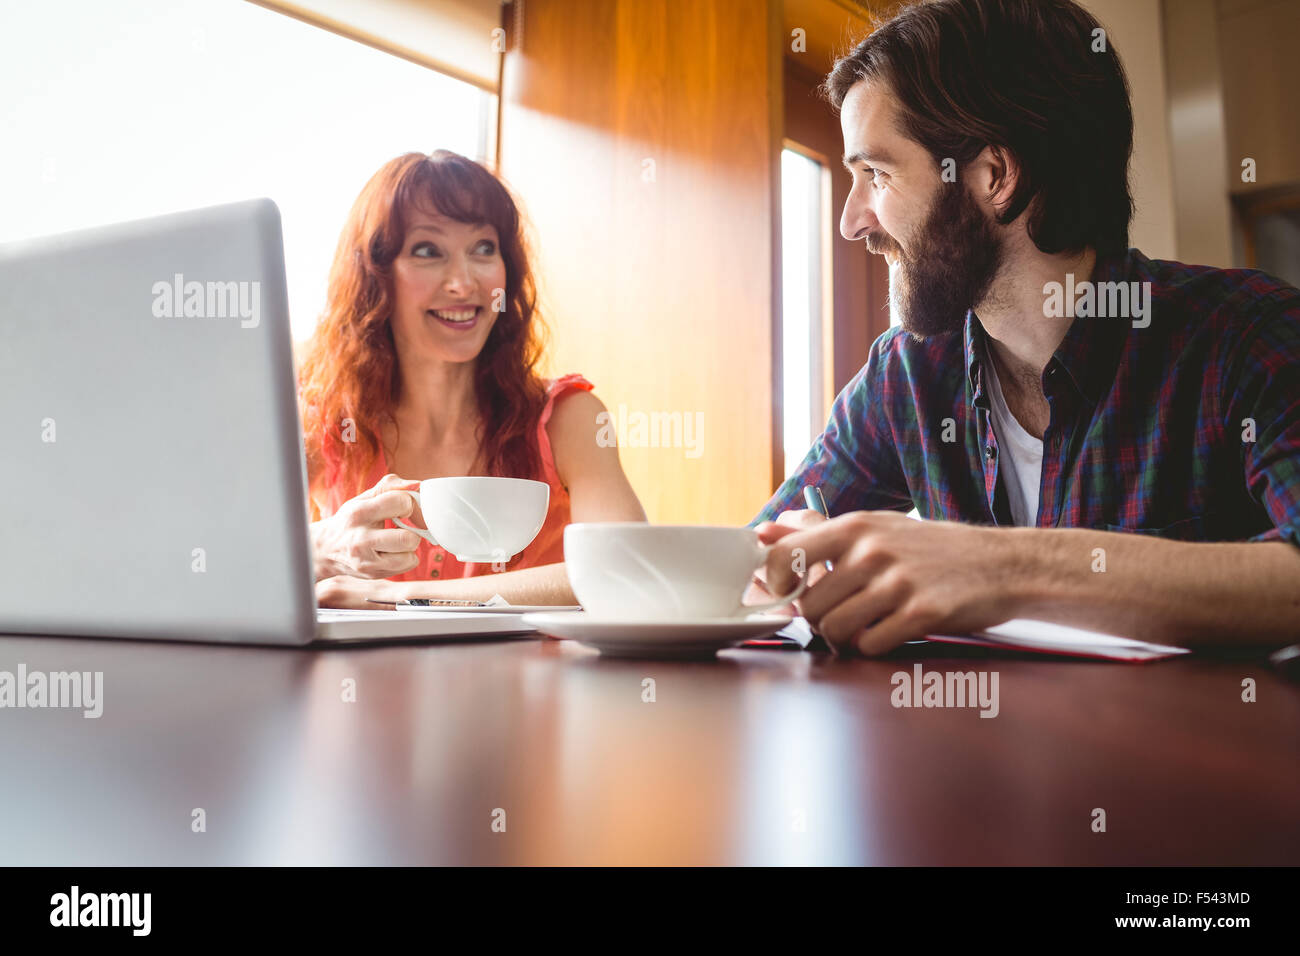 Students chatting in the cafe using laptop - Stock Image